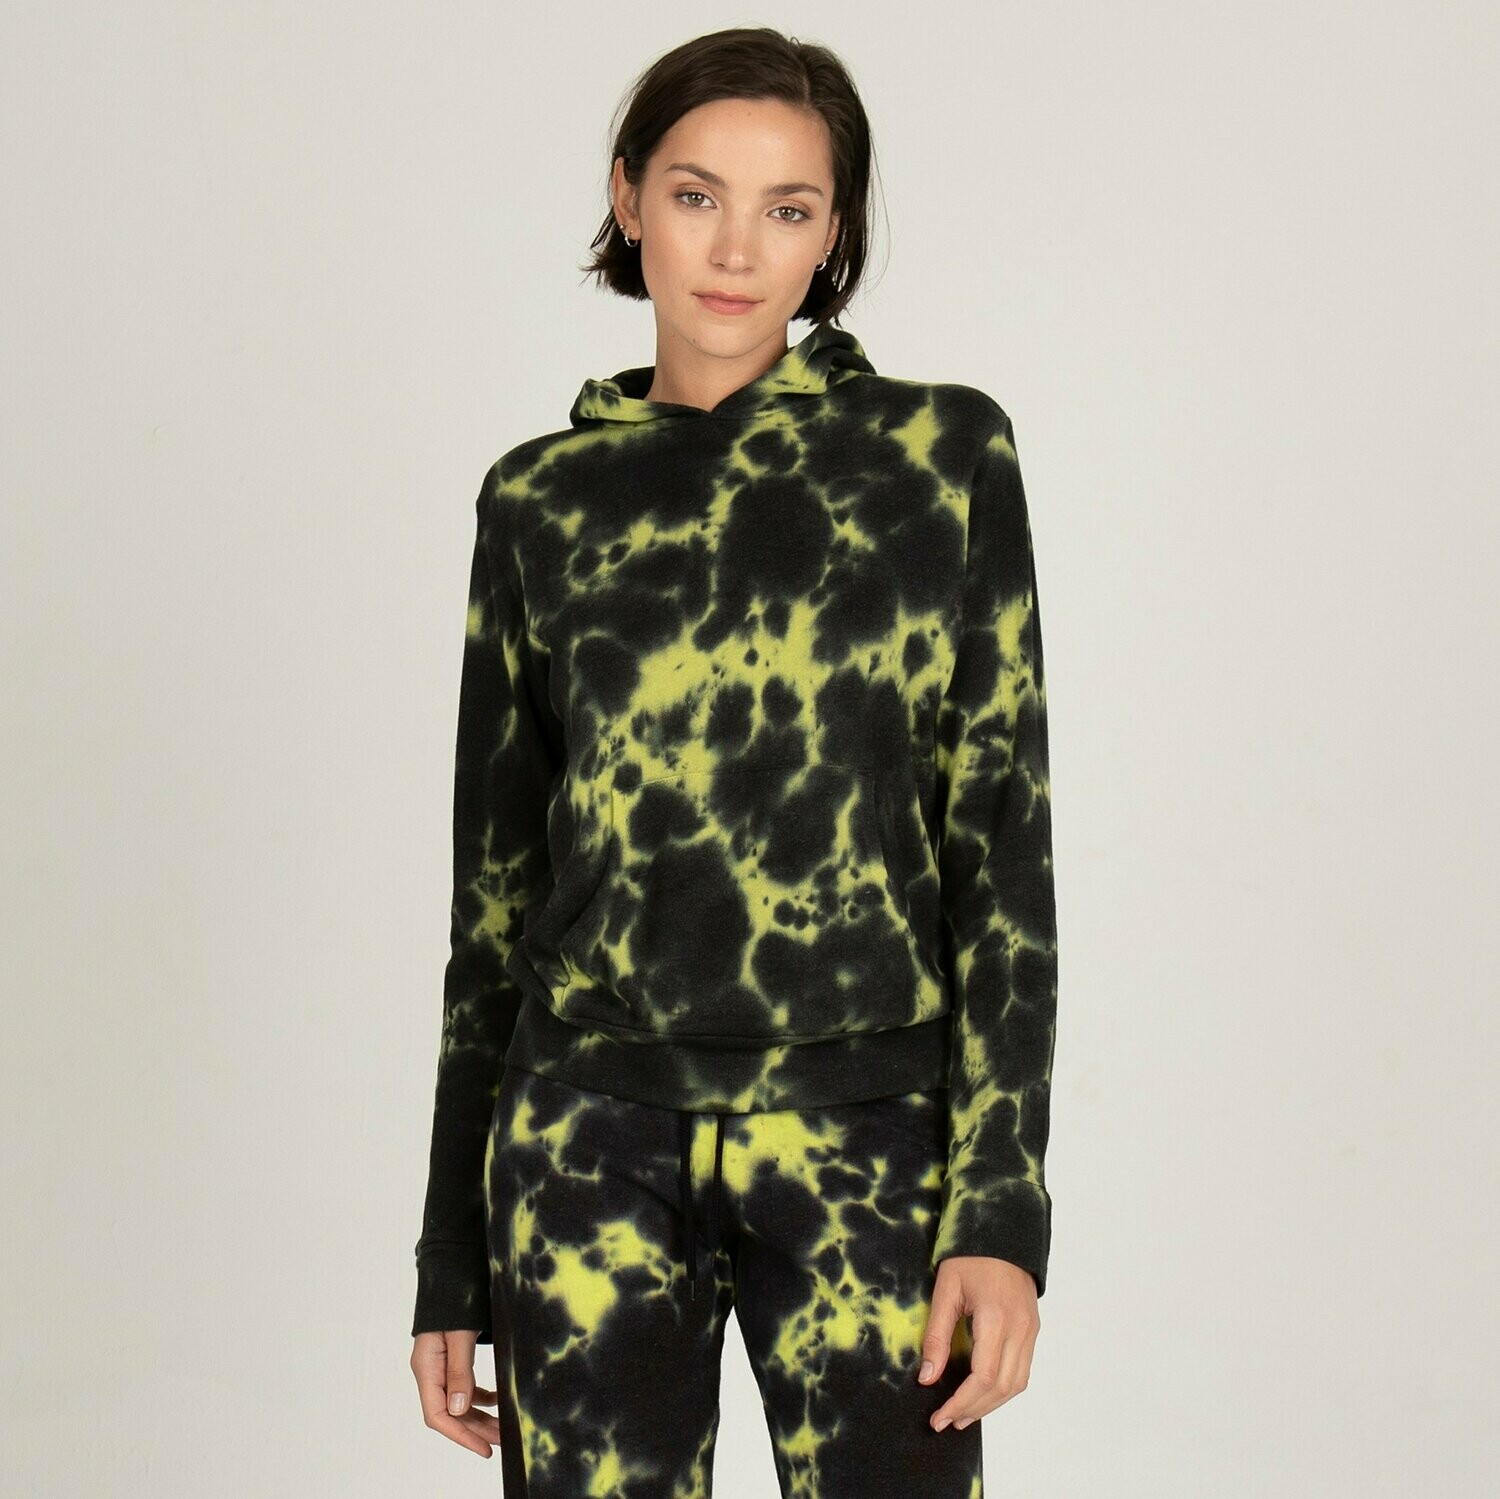 Monrow Black Out Tie Dye Pullover Hoody